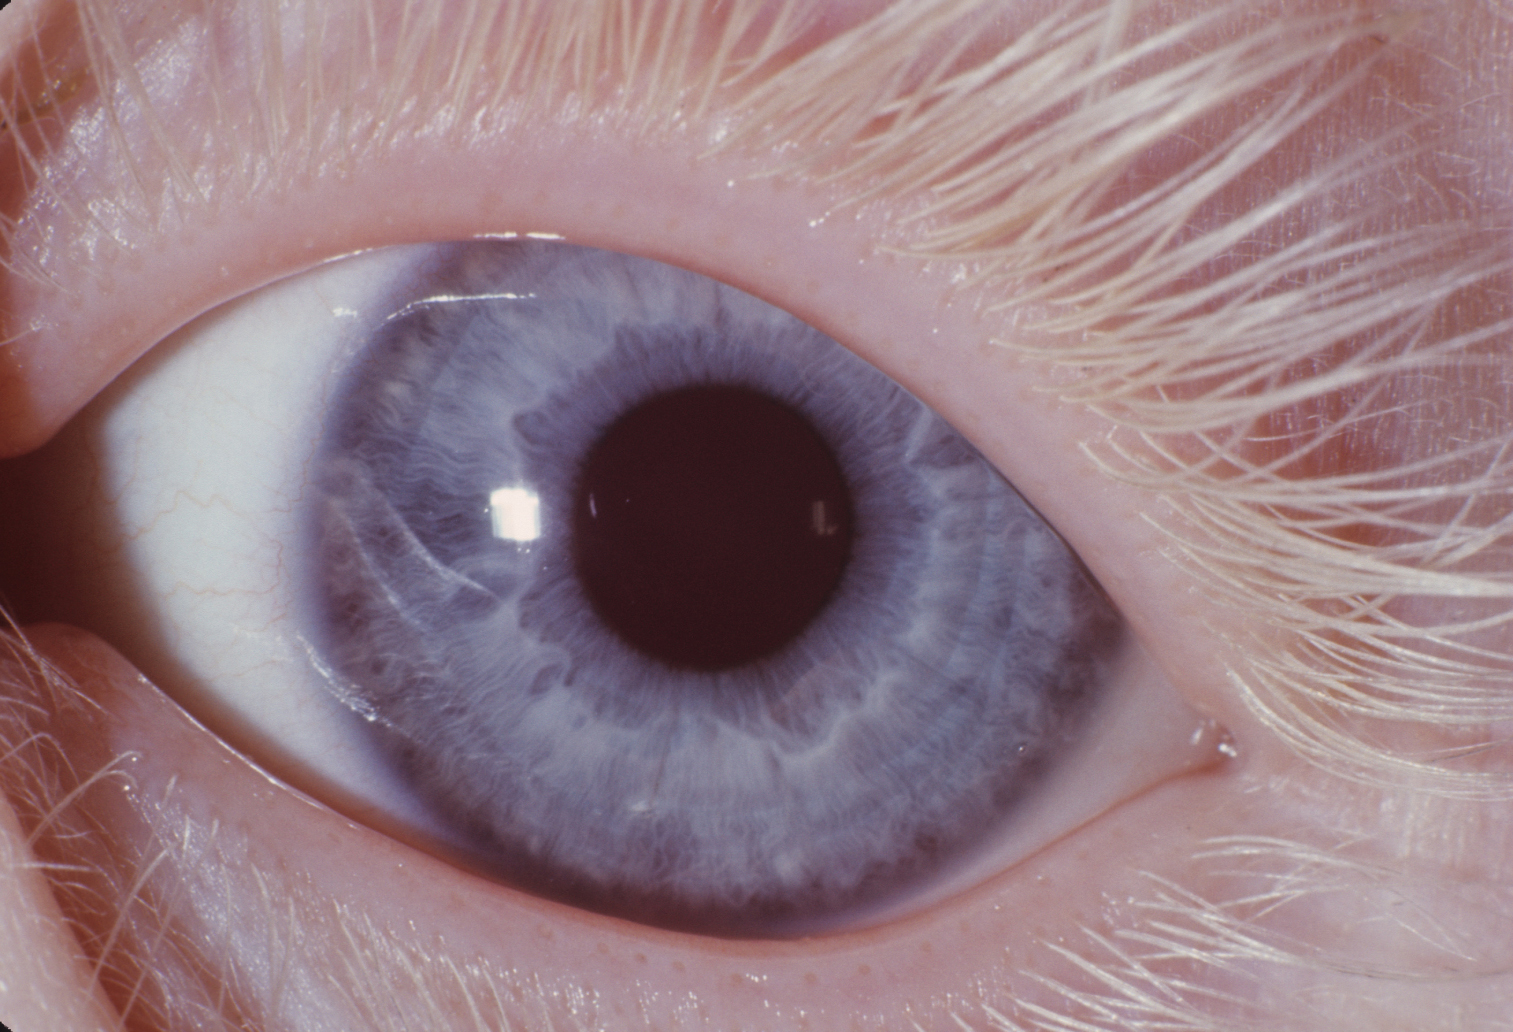 Eye in type IA oculocutaneous albinism